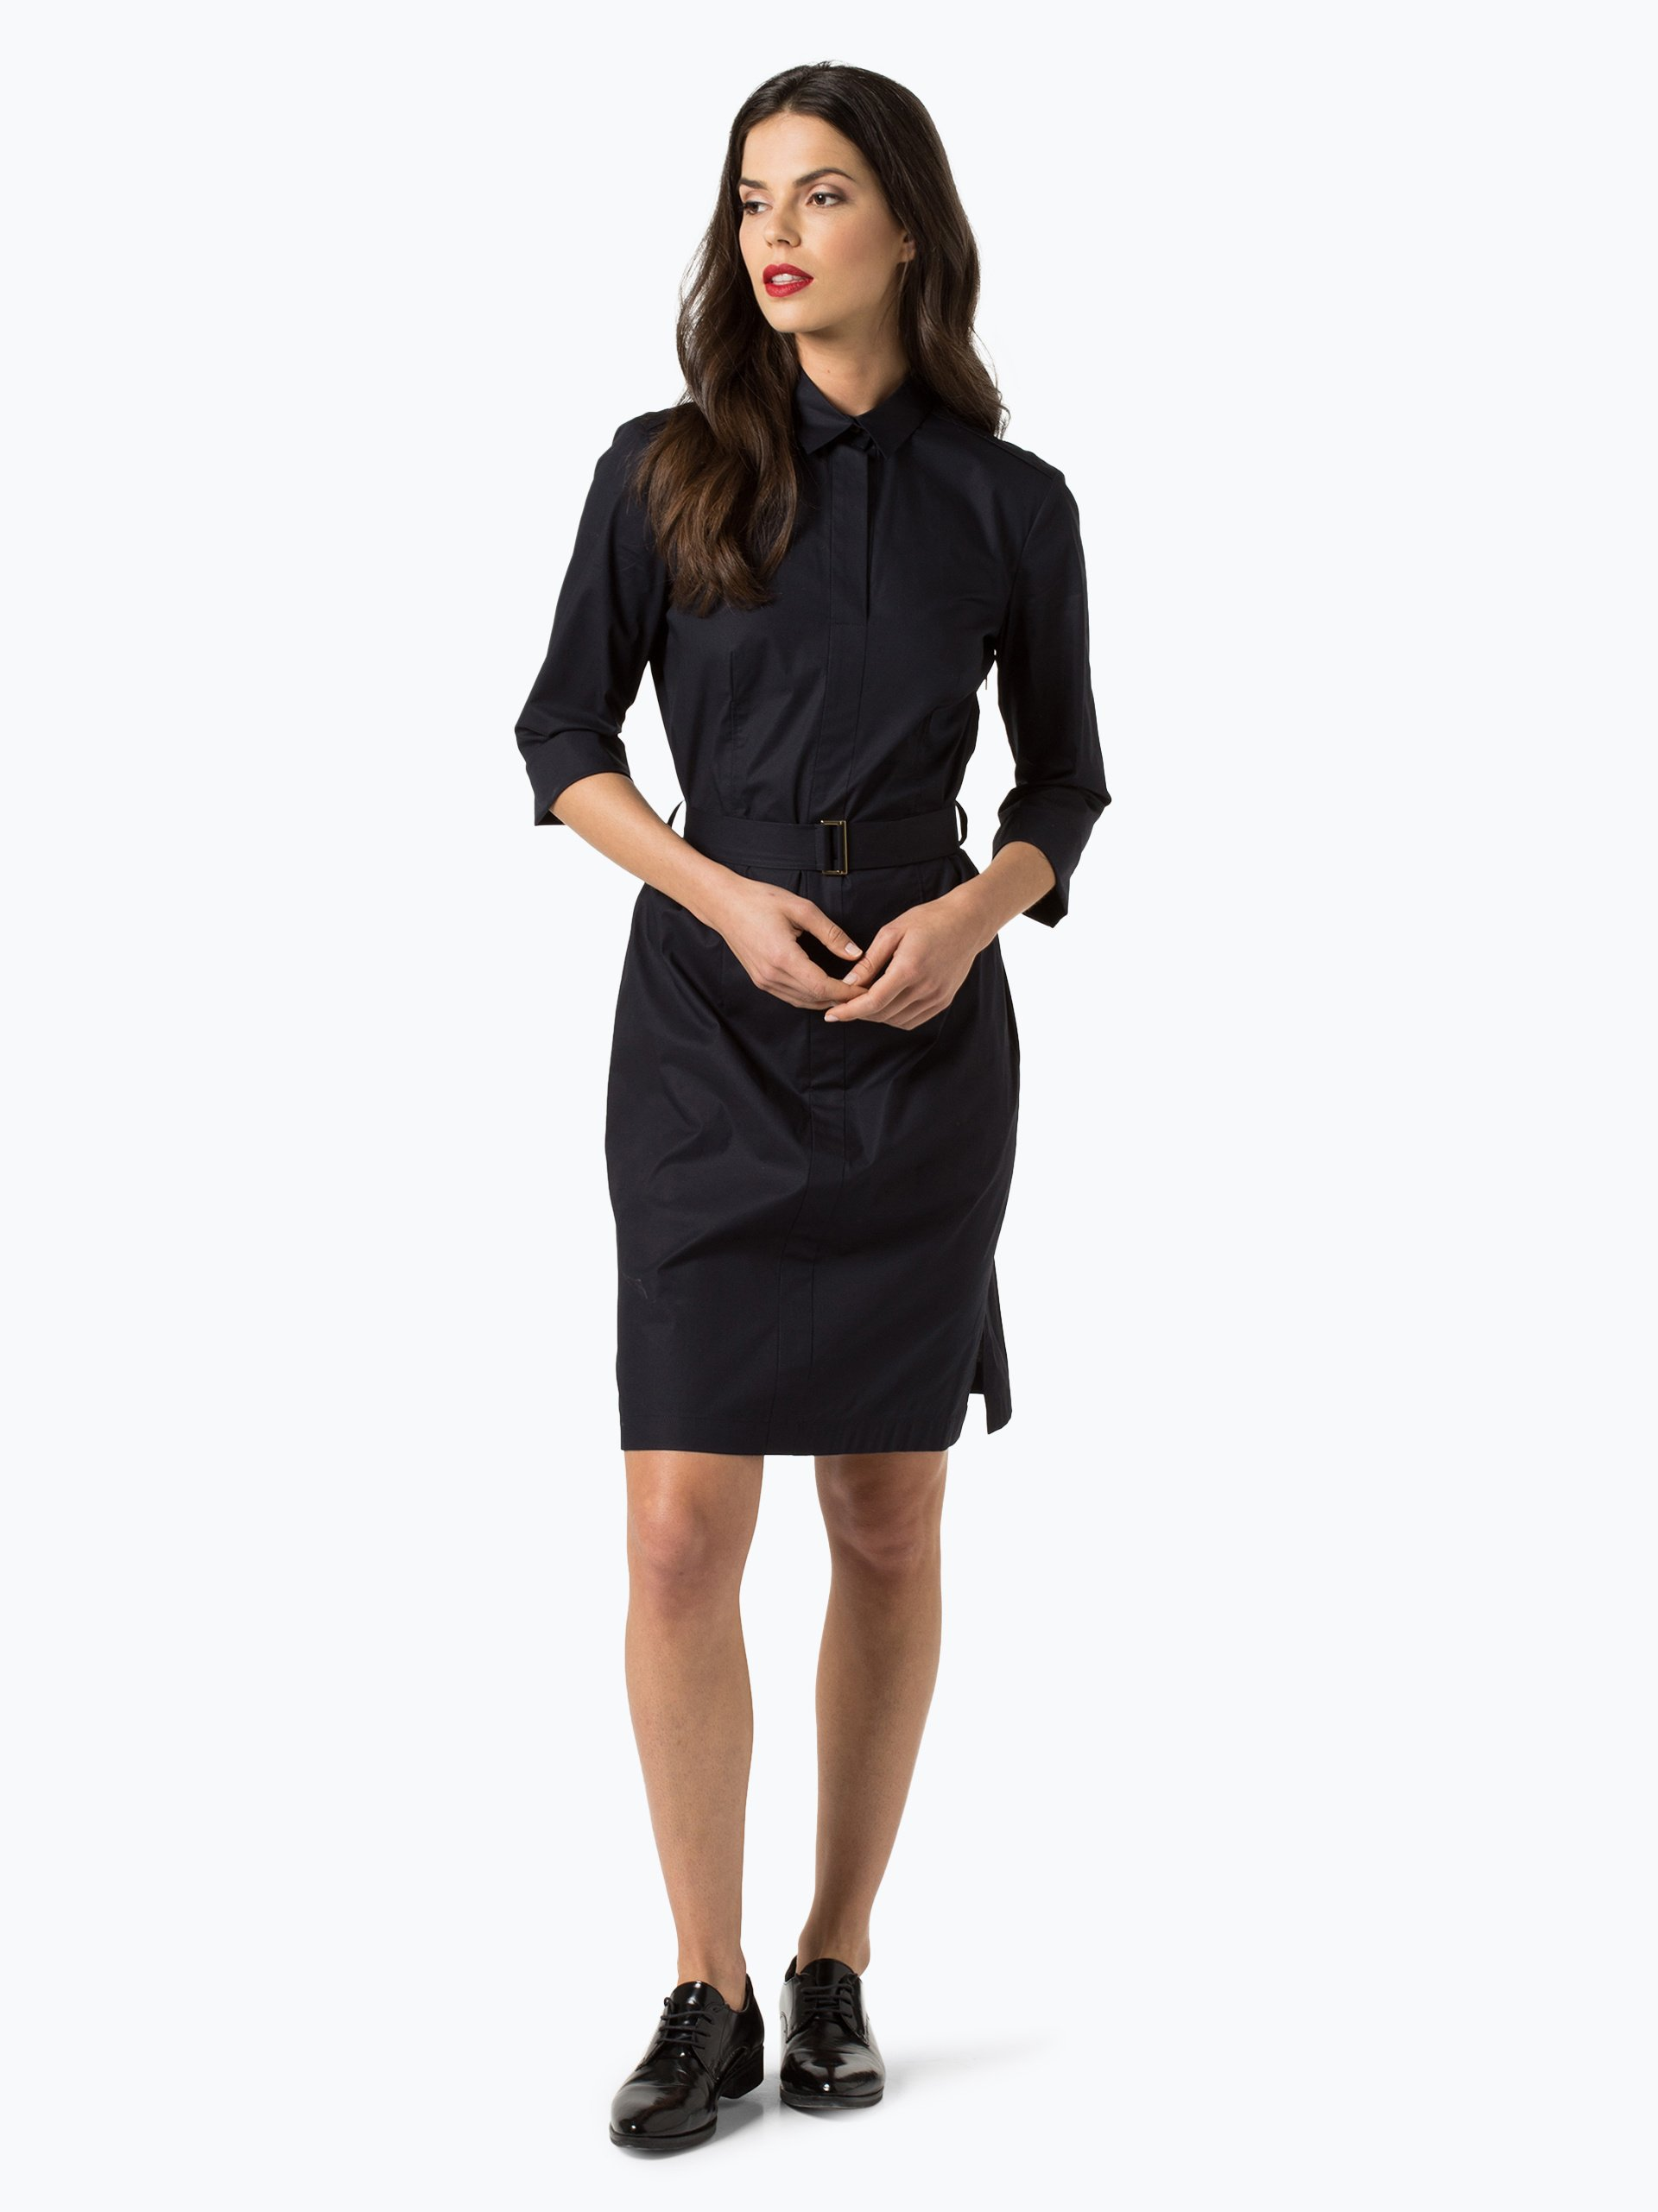 BOSS Damen Kleid - Dashiri4